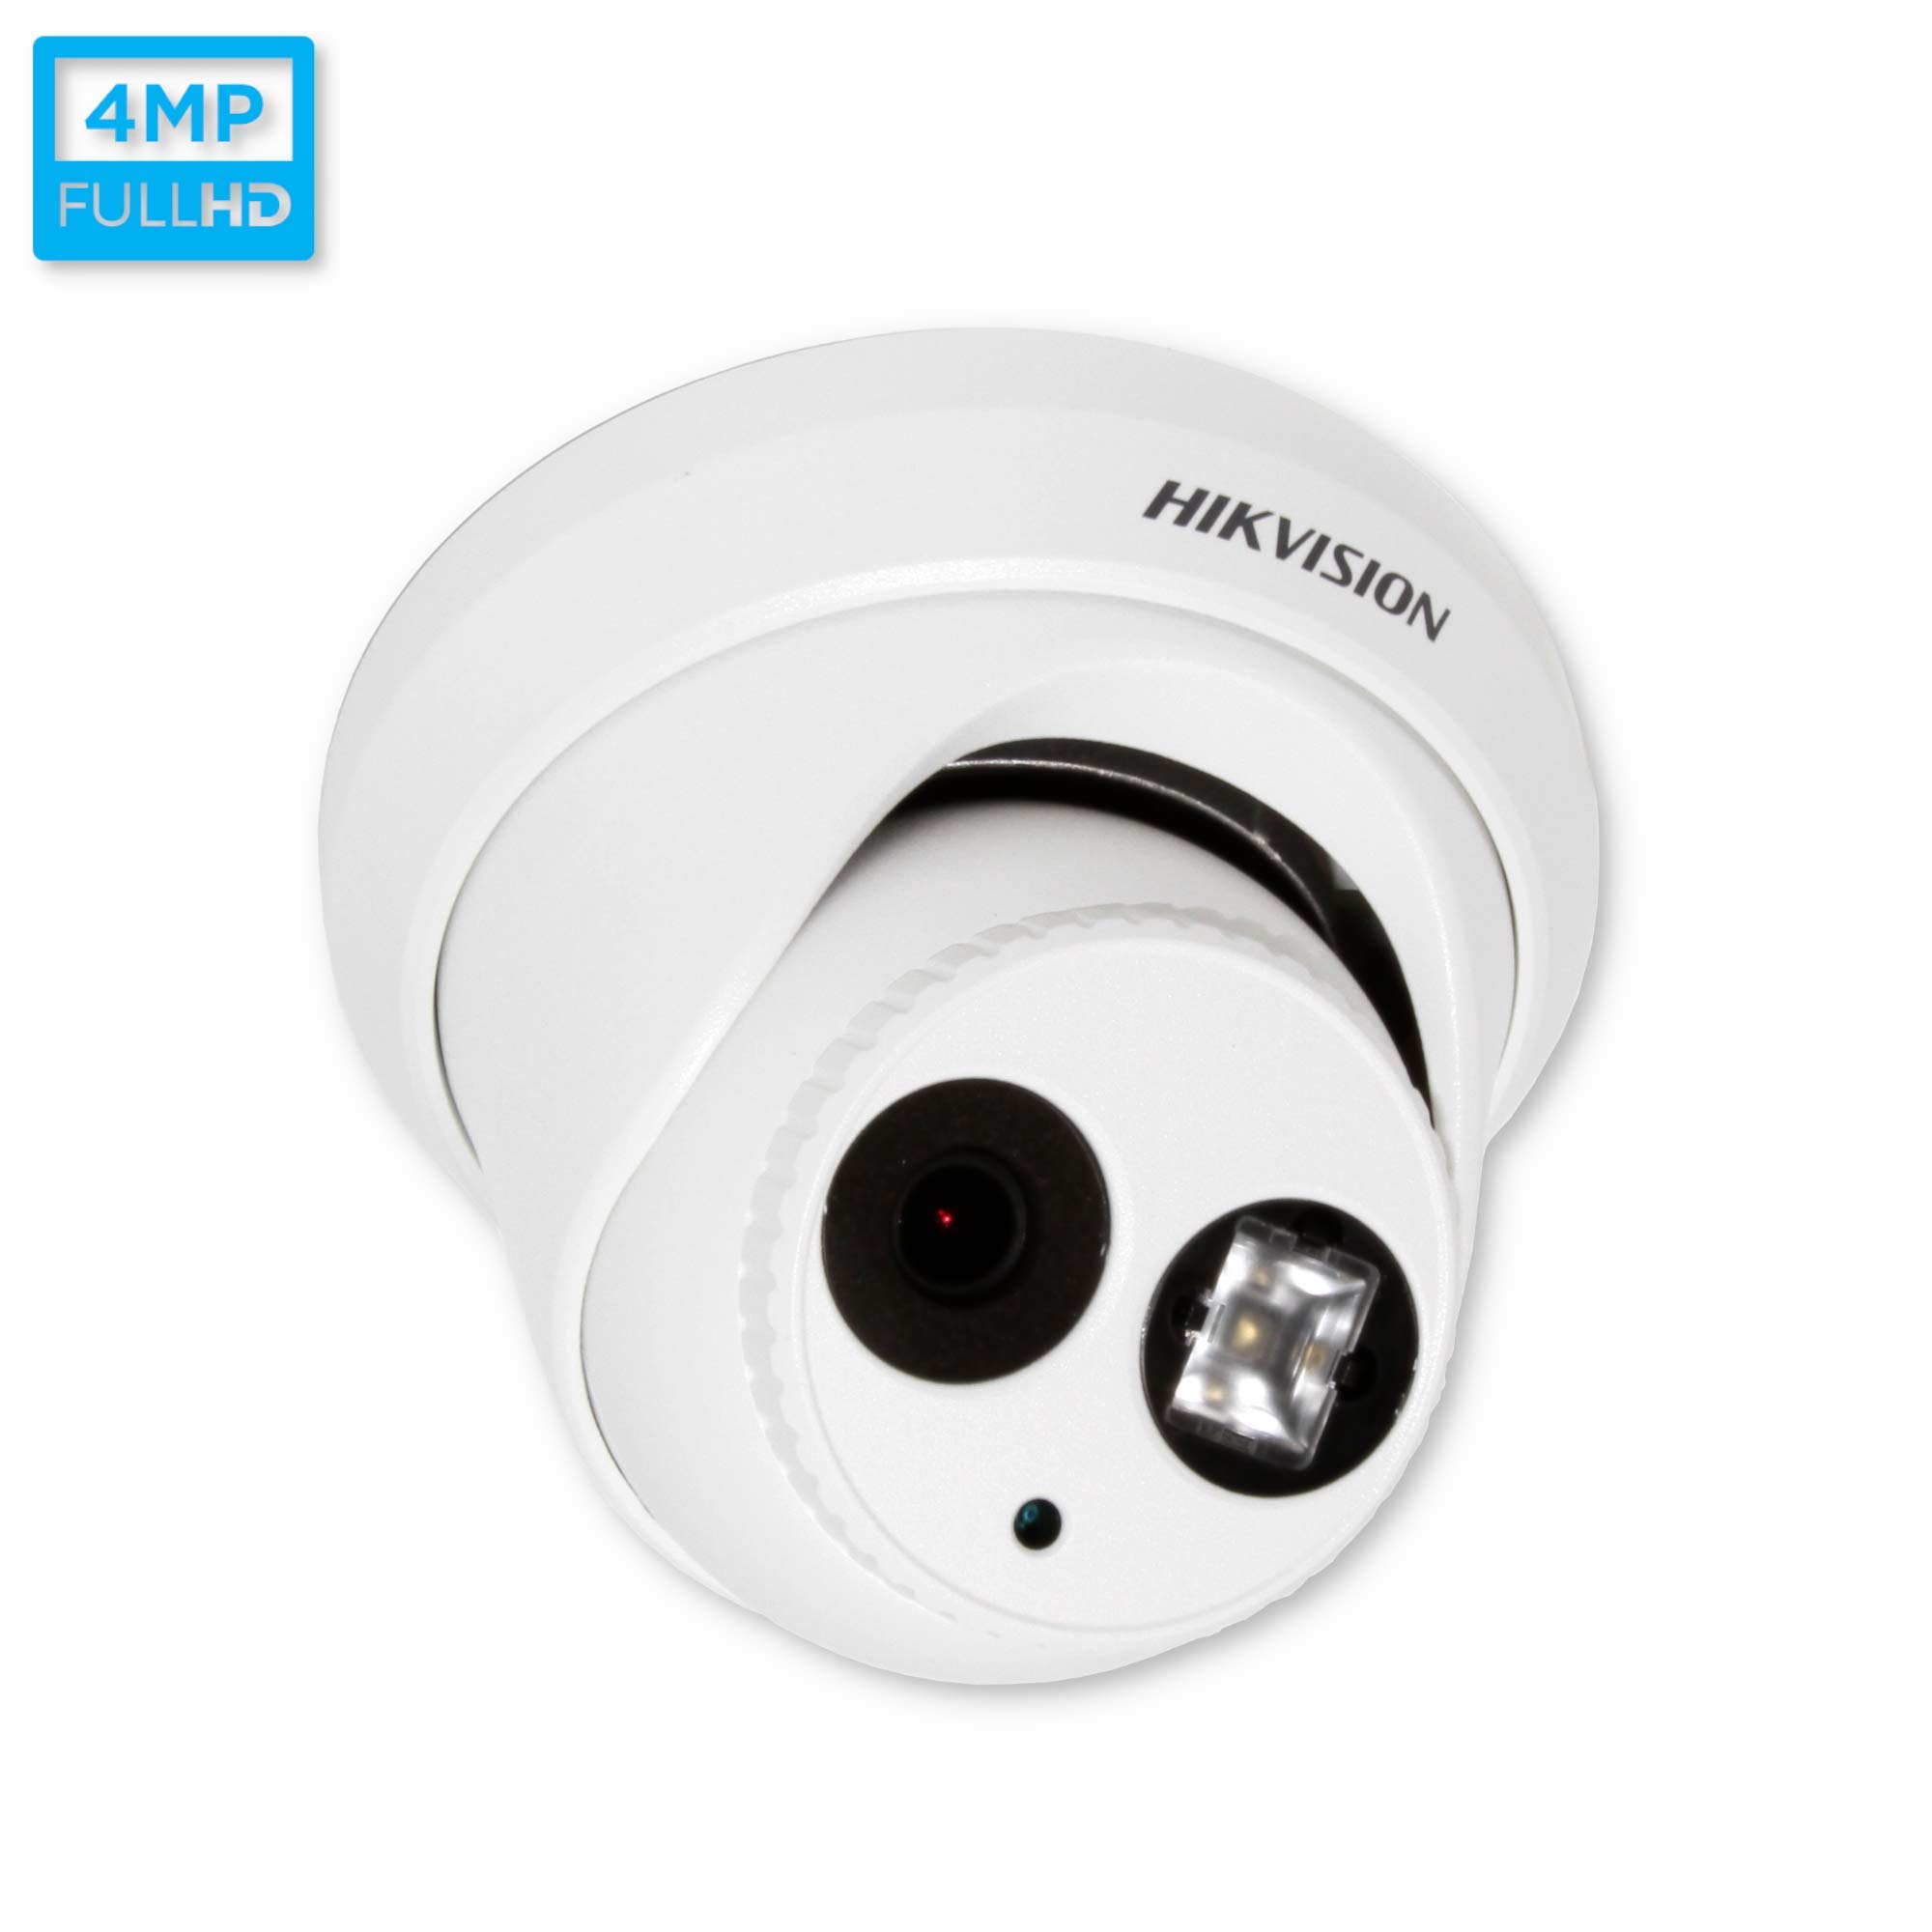 HIKVISION 4 Megapixel EXIR PoE Turret IP Outdoor Surveillance Camera, DS-2CD2342WD-I 2.8mm Lens,White